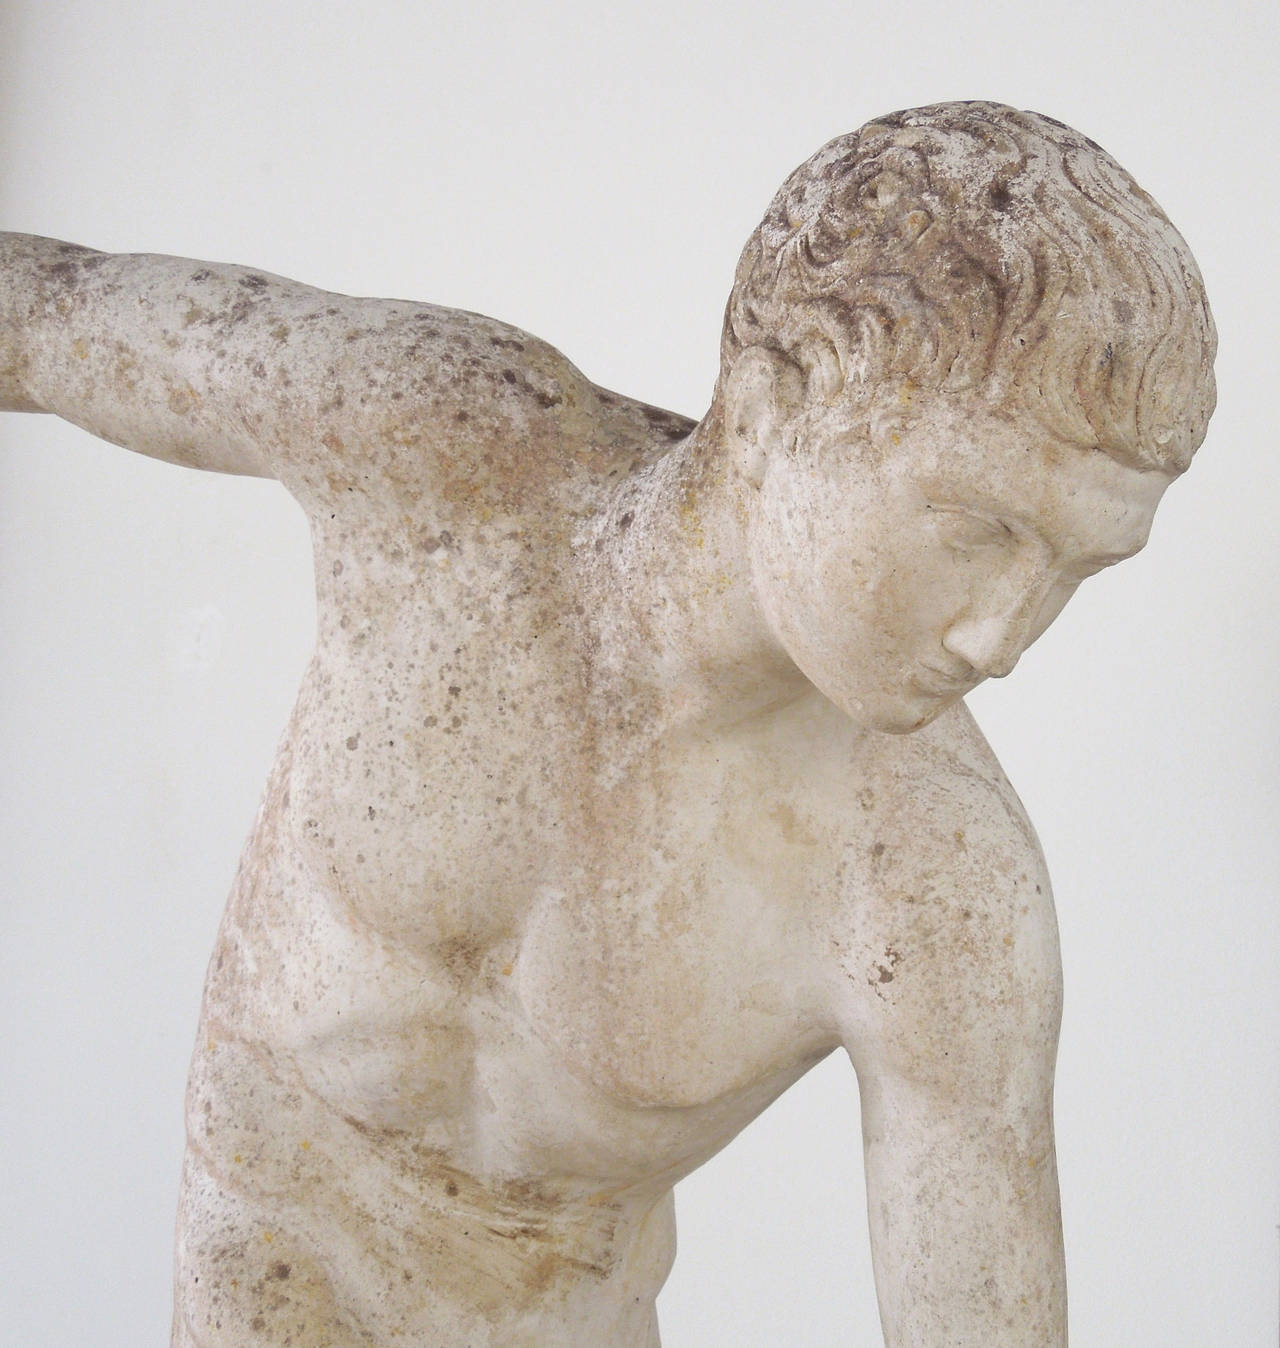 the discus thrower 12 1/4 inches tall the discus thrower museum replica figurine is cast in solid marble resin, a very durable material that mimics carved stone the exquisite detail of.